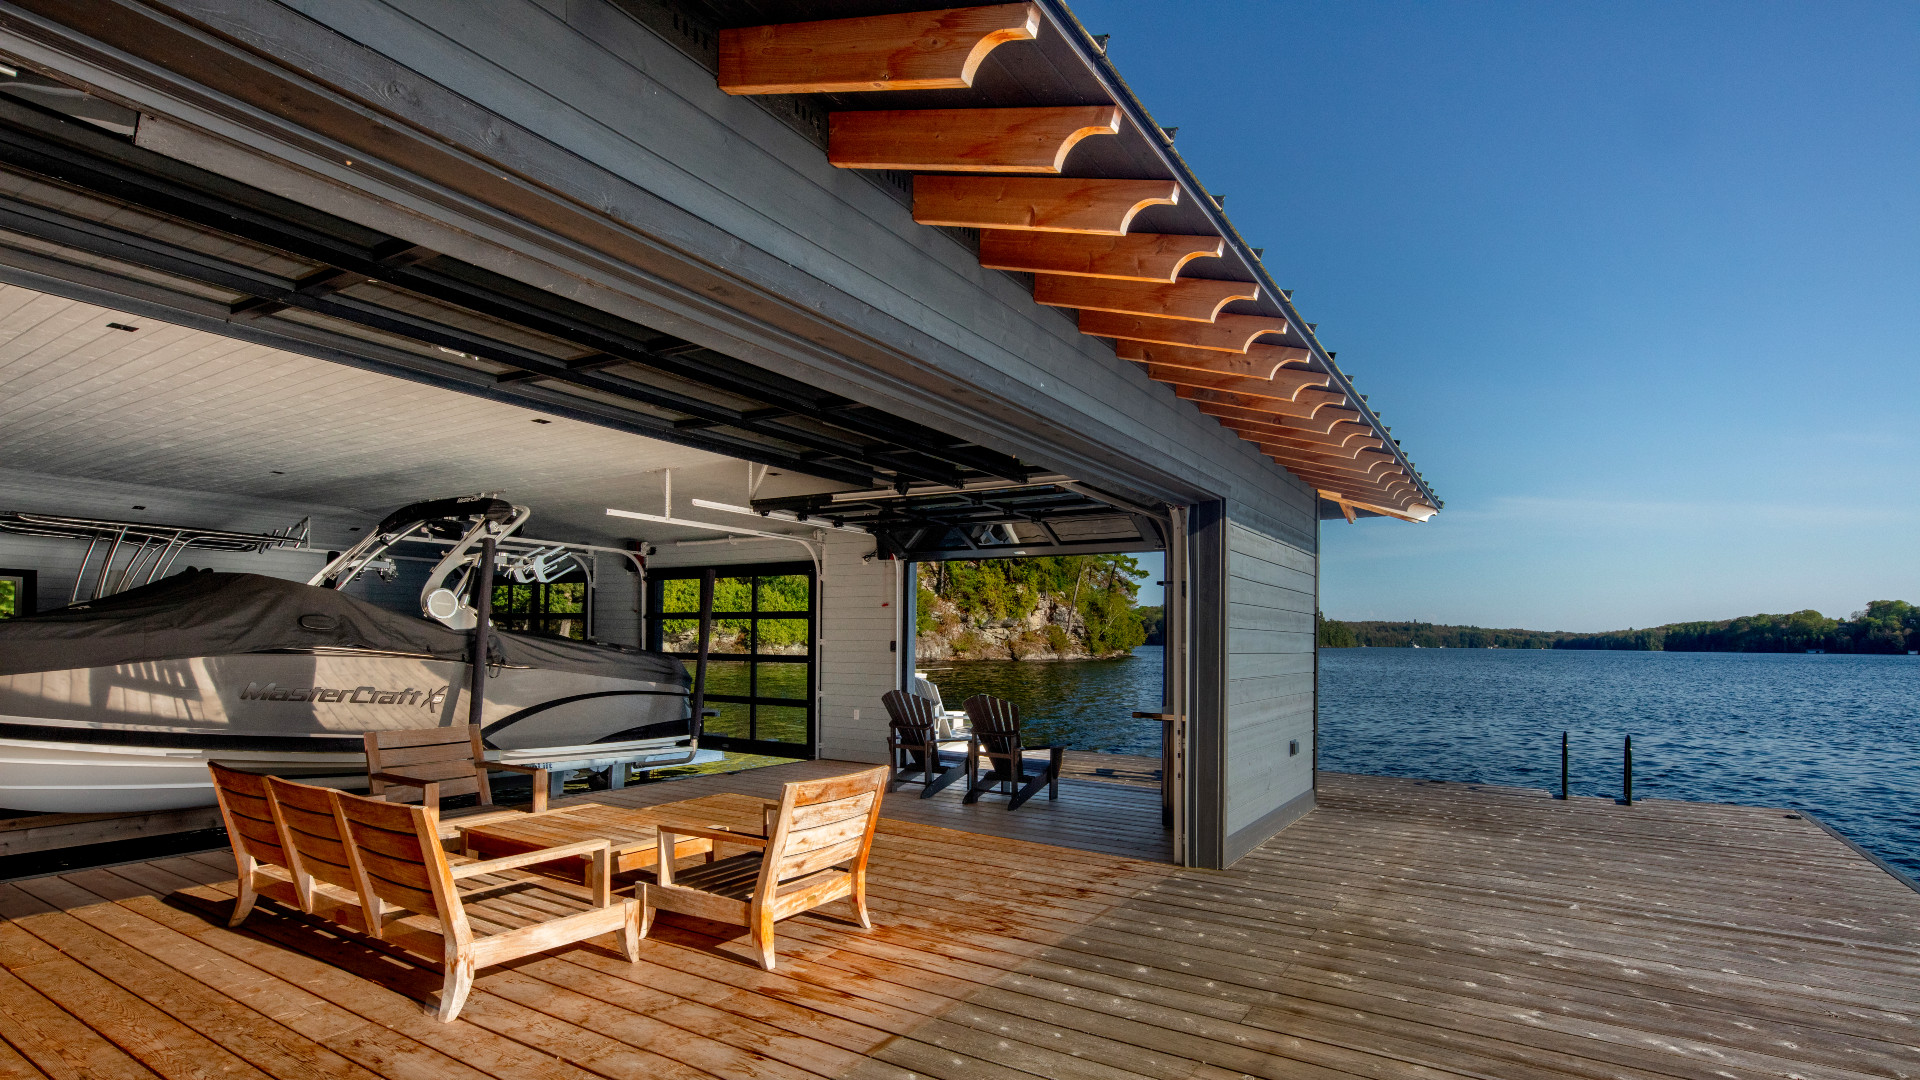 A photo of the deck by the boathouse.